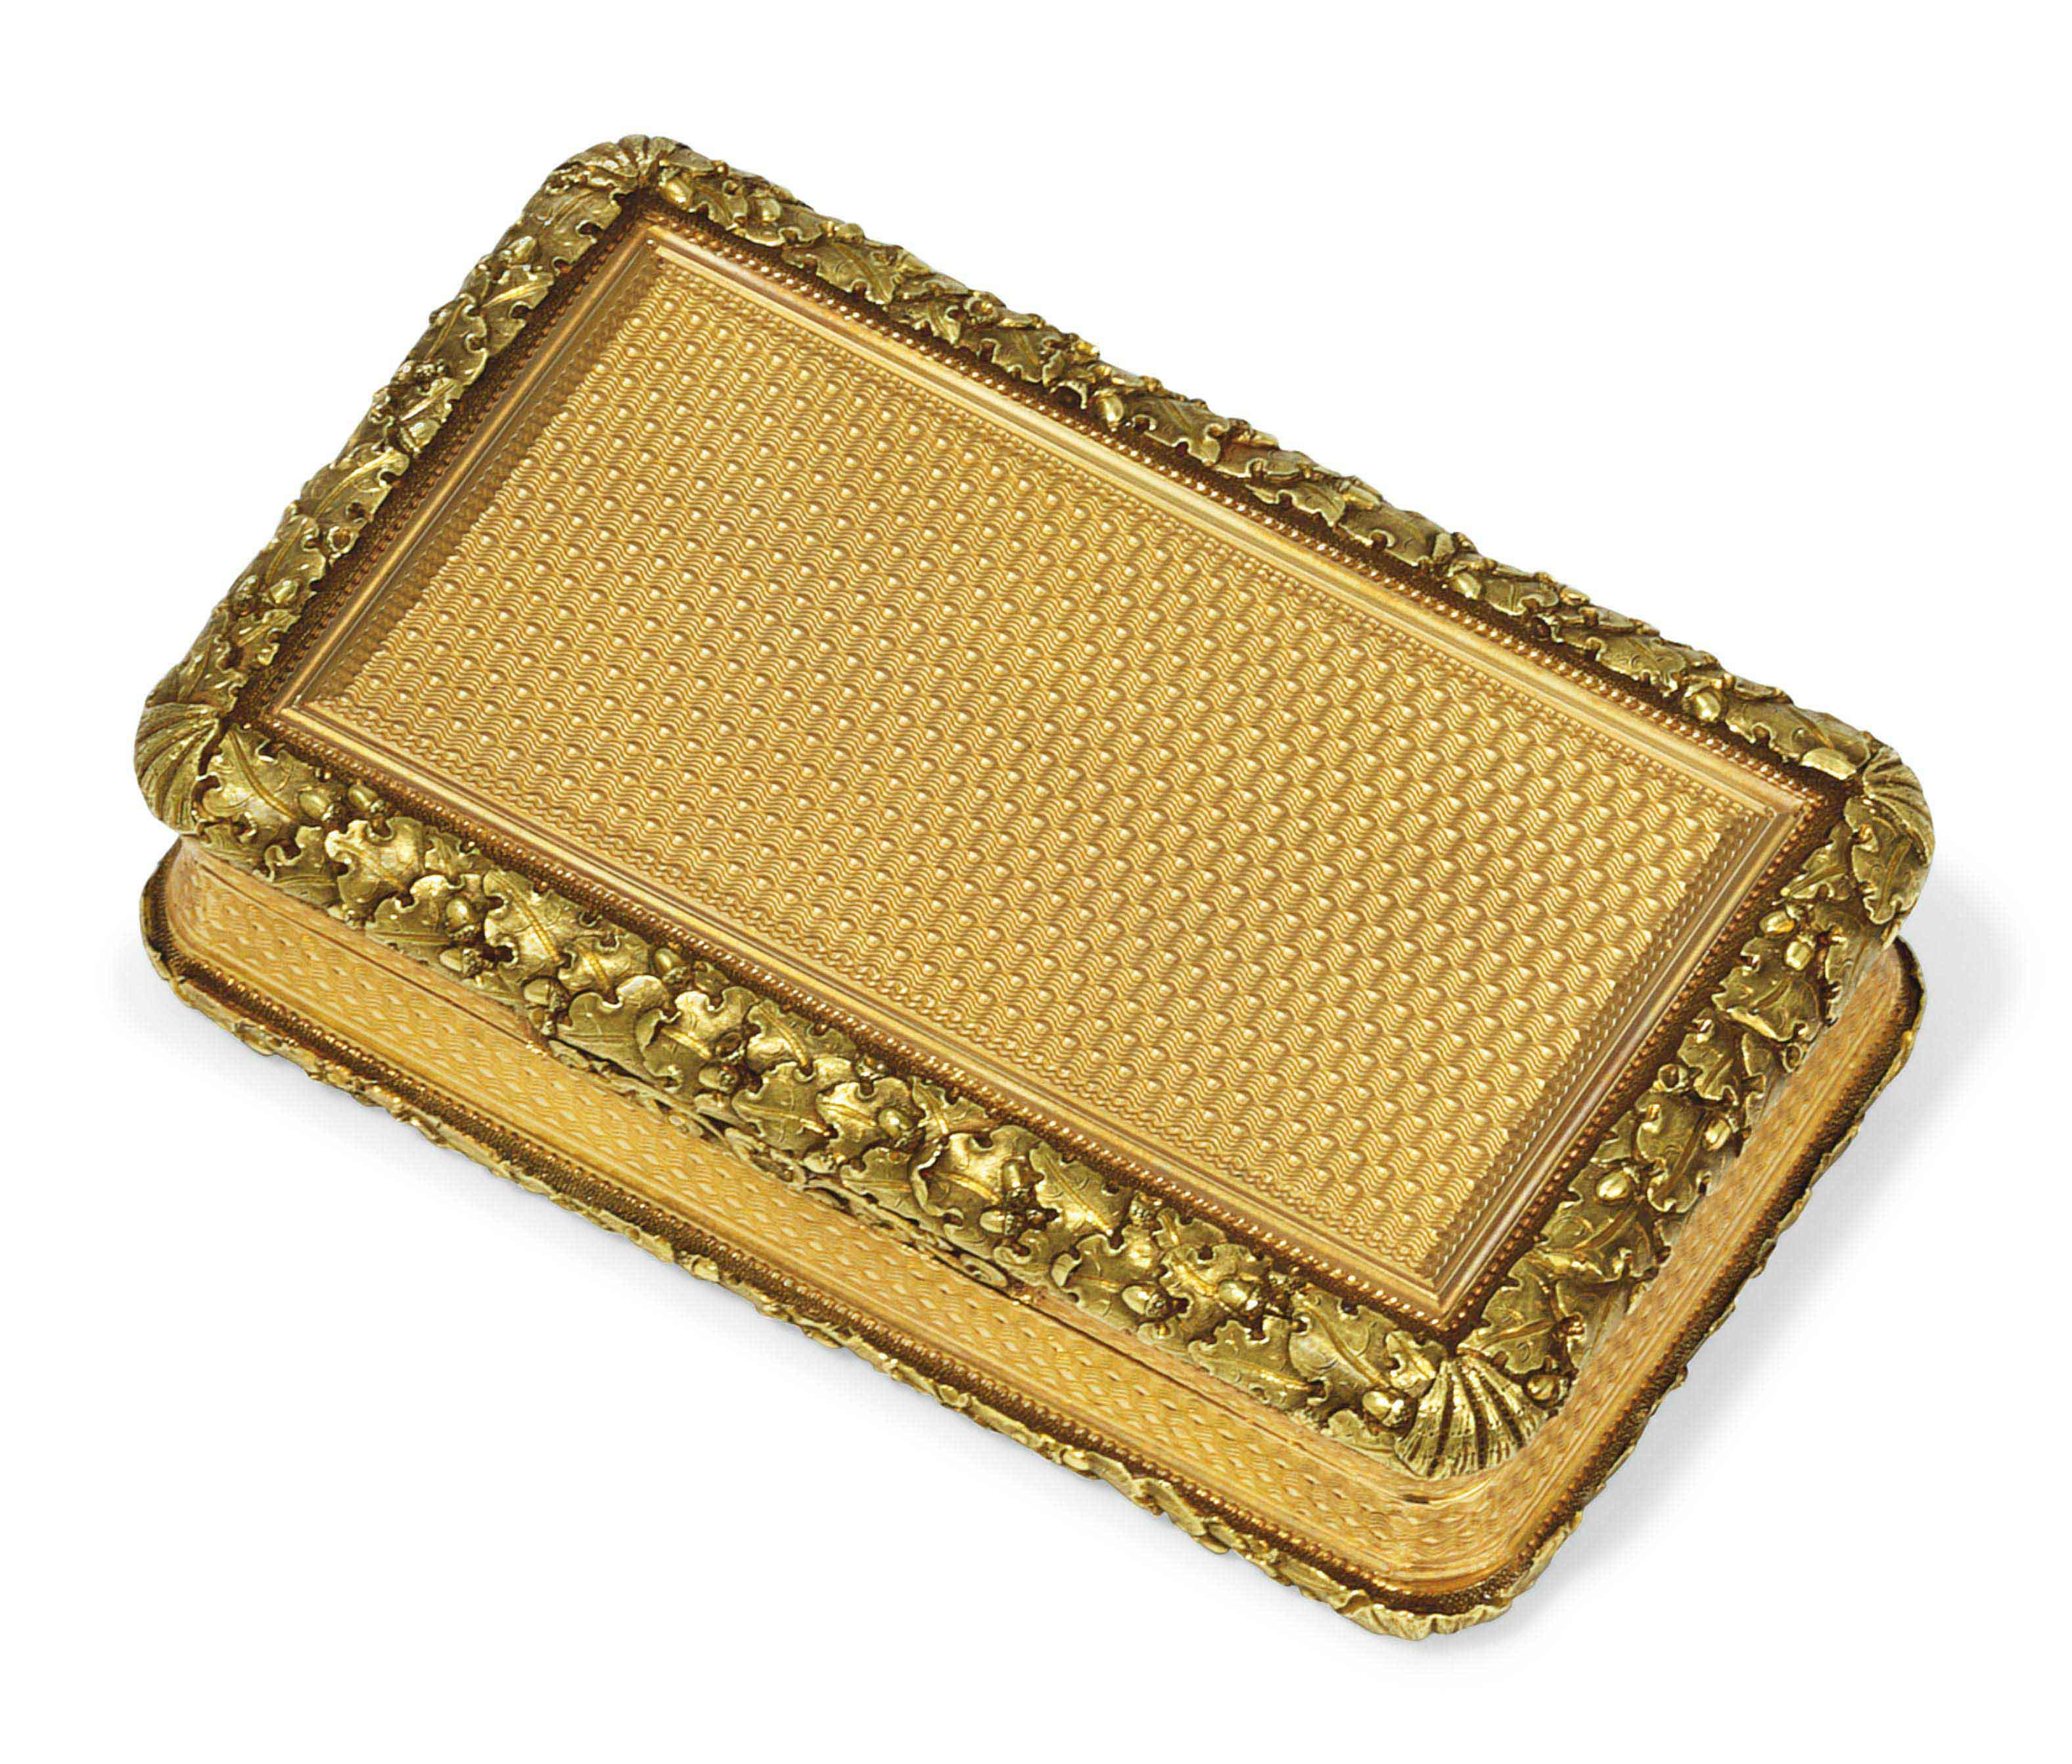 A REGENCY GOLD SNUFF-BOX